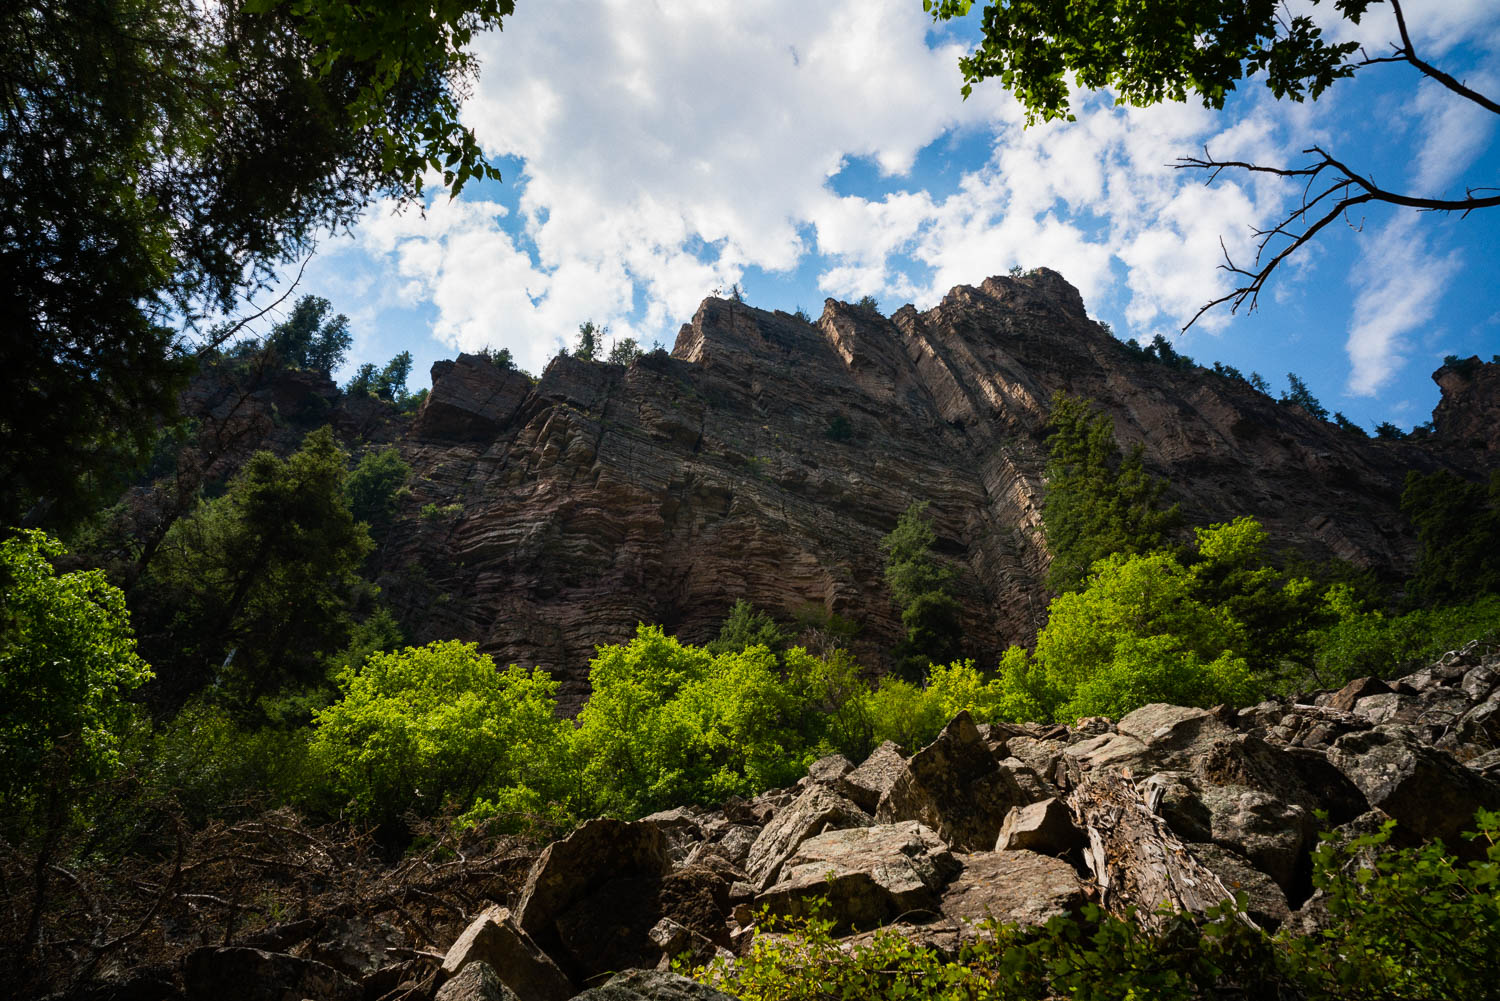 The hike up to Hanging Lake, Glenwood Canyon